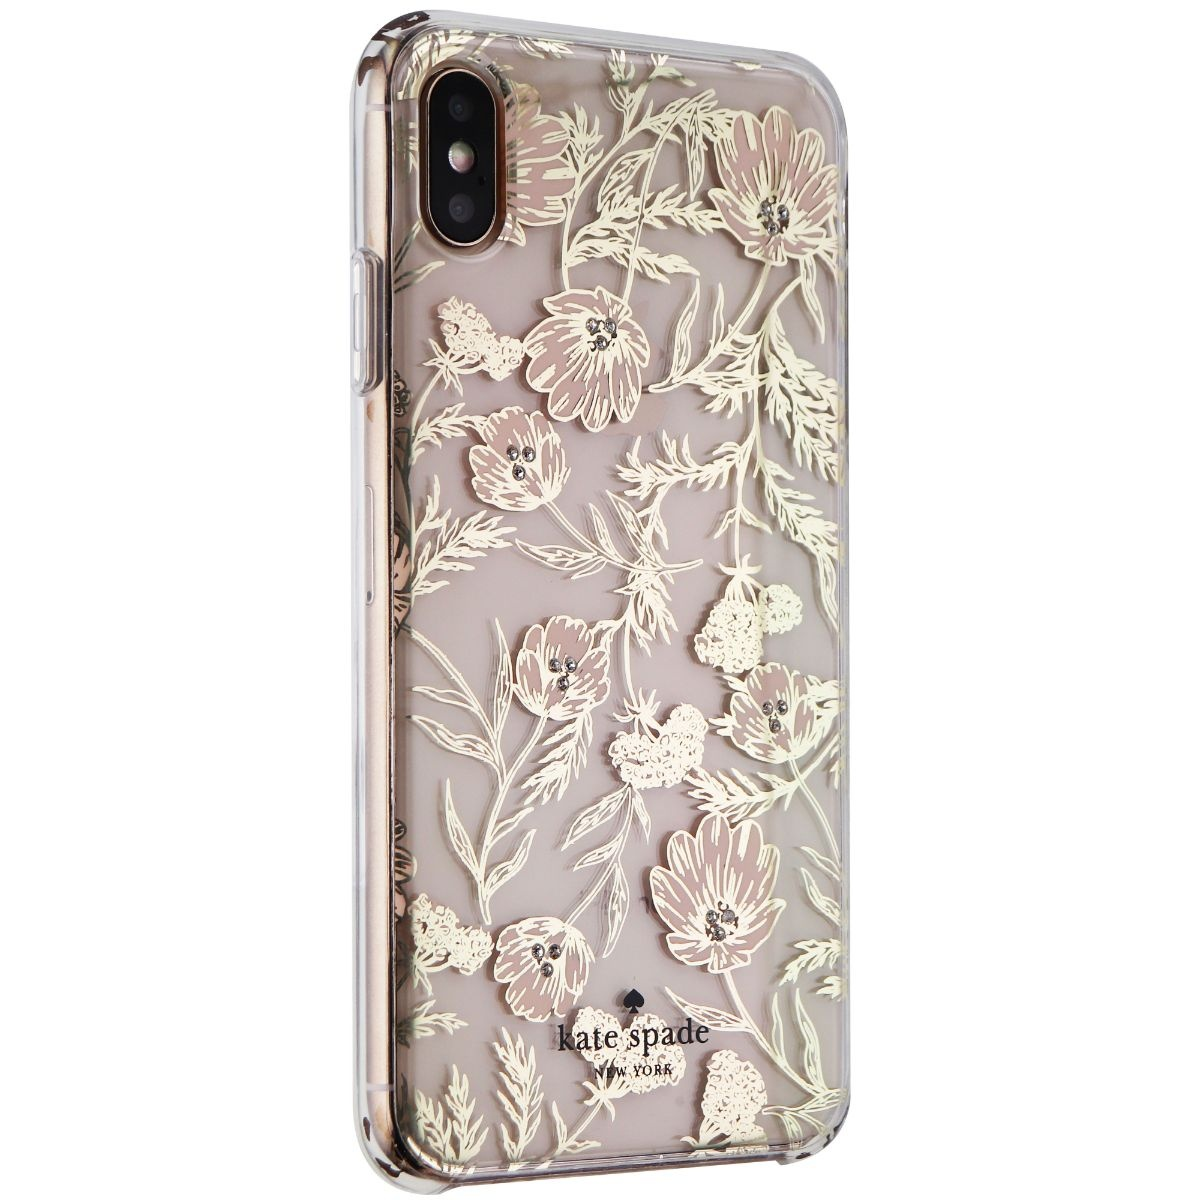 Kate Spade Hardshell Case for Apple iPhone XS Max - Blossom Pink/Gold Foil/Gems